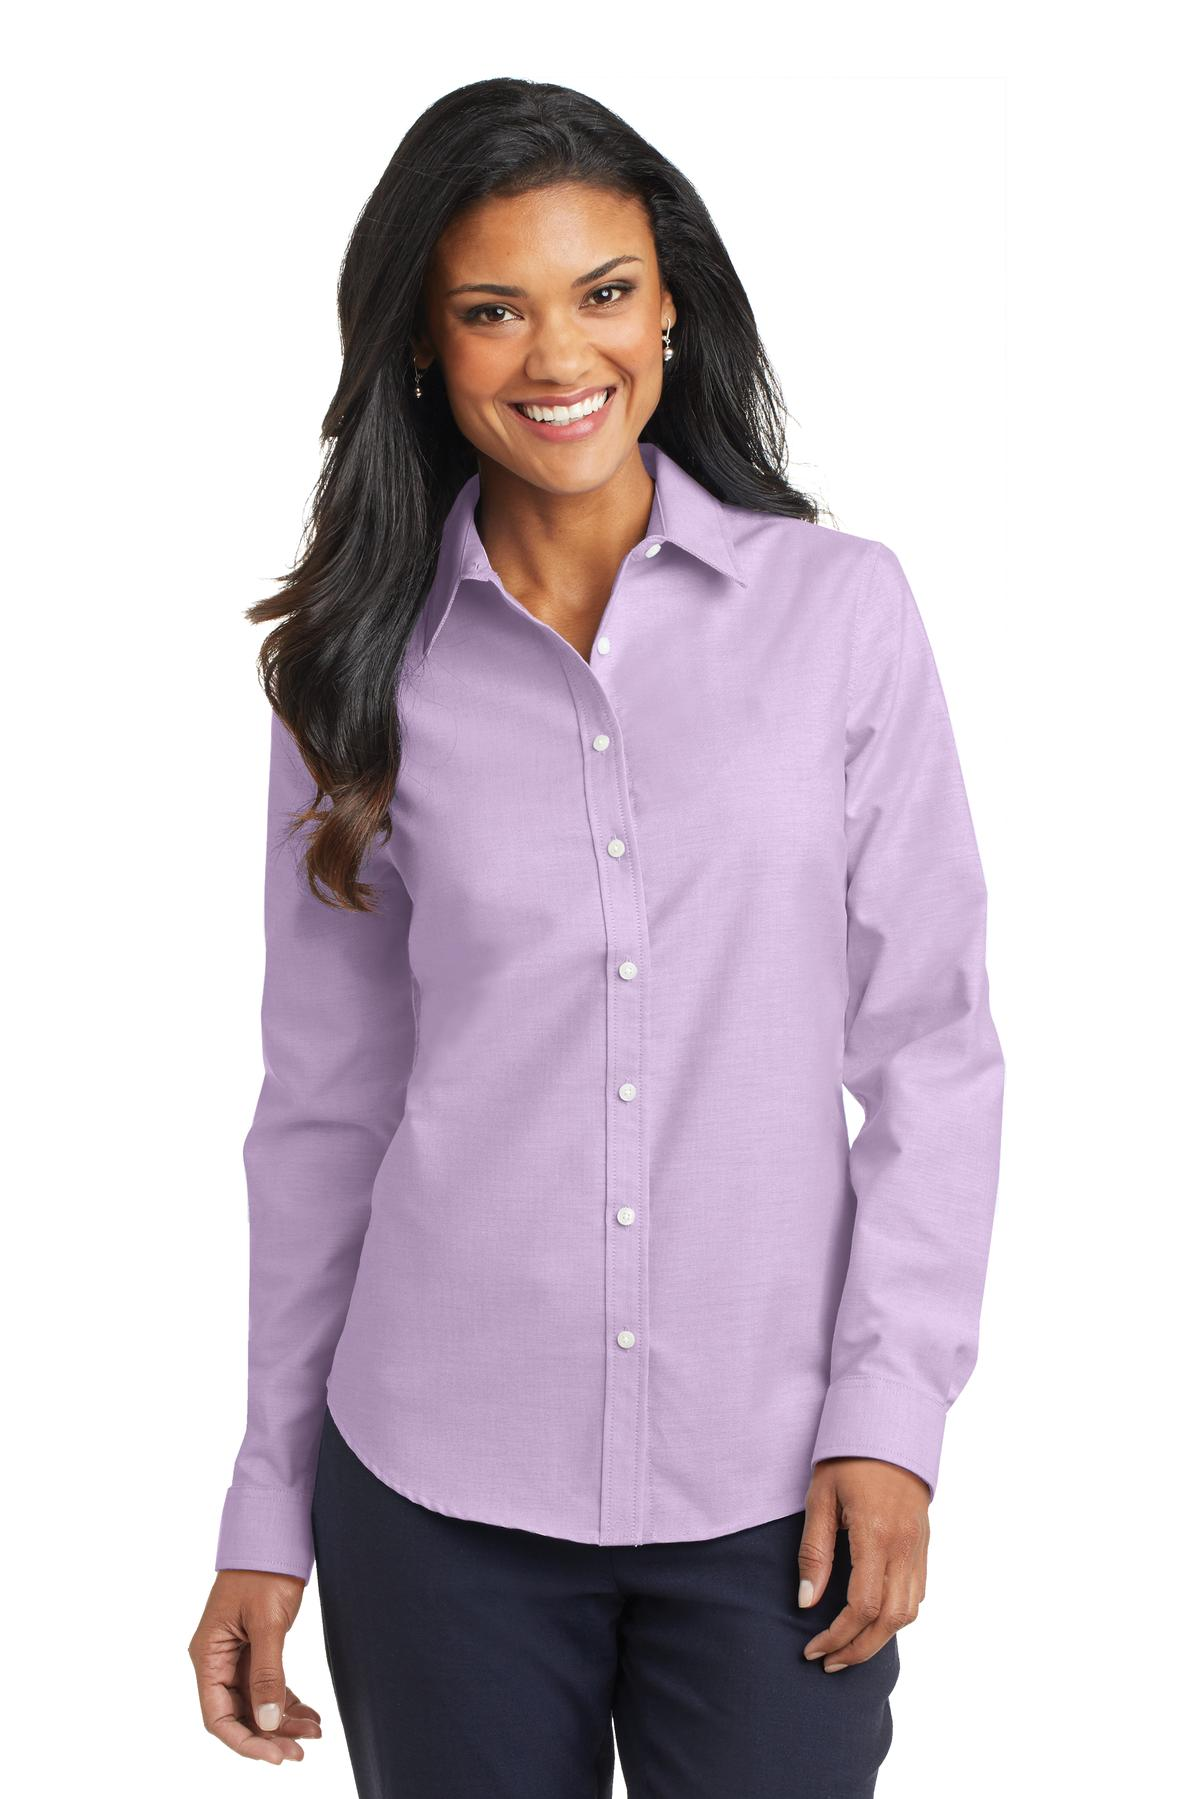 Port Authority Womens Superpro Oxford Shirt L658